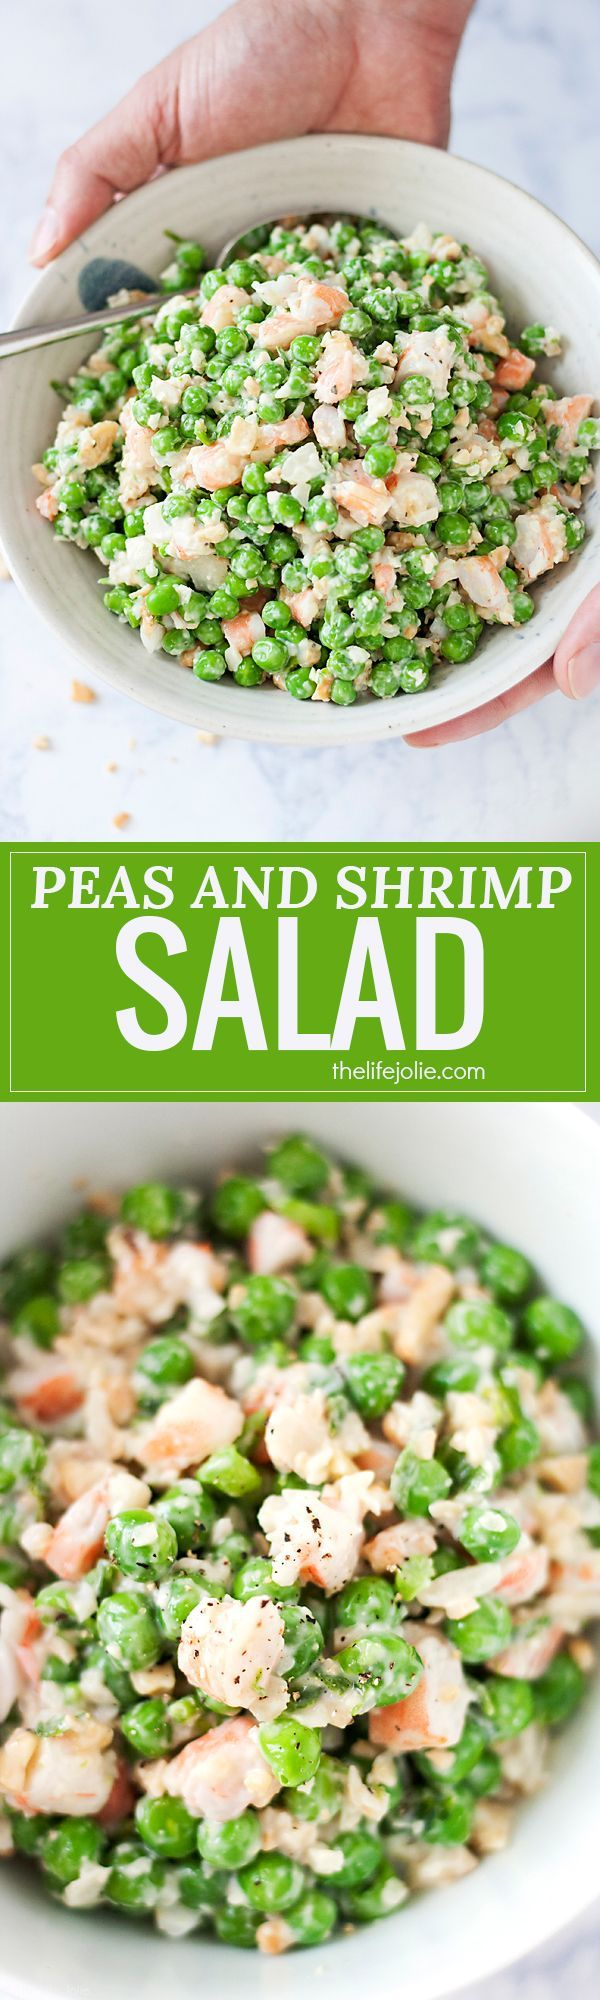 This Peas and Shrimp Salad recipe is a super easy side dish that's perfect for any holiday get together! It's served cold because it's creamy with sweet green peas (I totally used frozen!), shrimp, and cashews and water chestnuts which make it crunchy. Make this if you need a tasty and light Thanksgiving side dish!